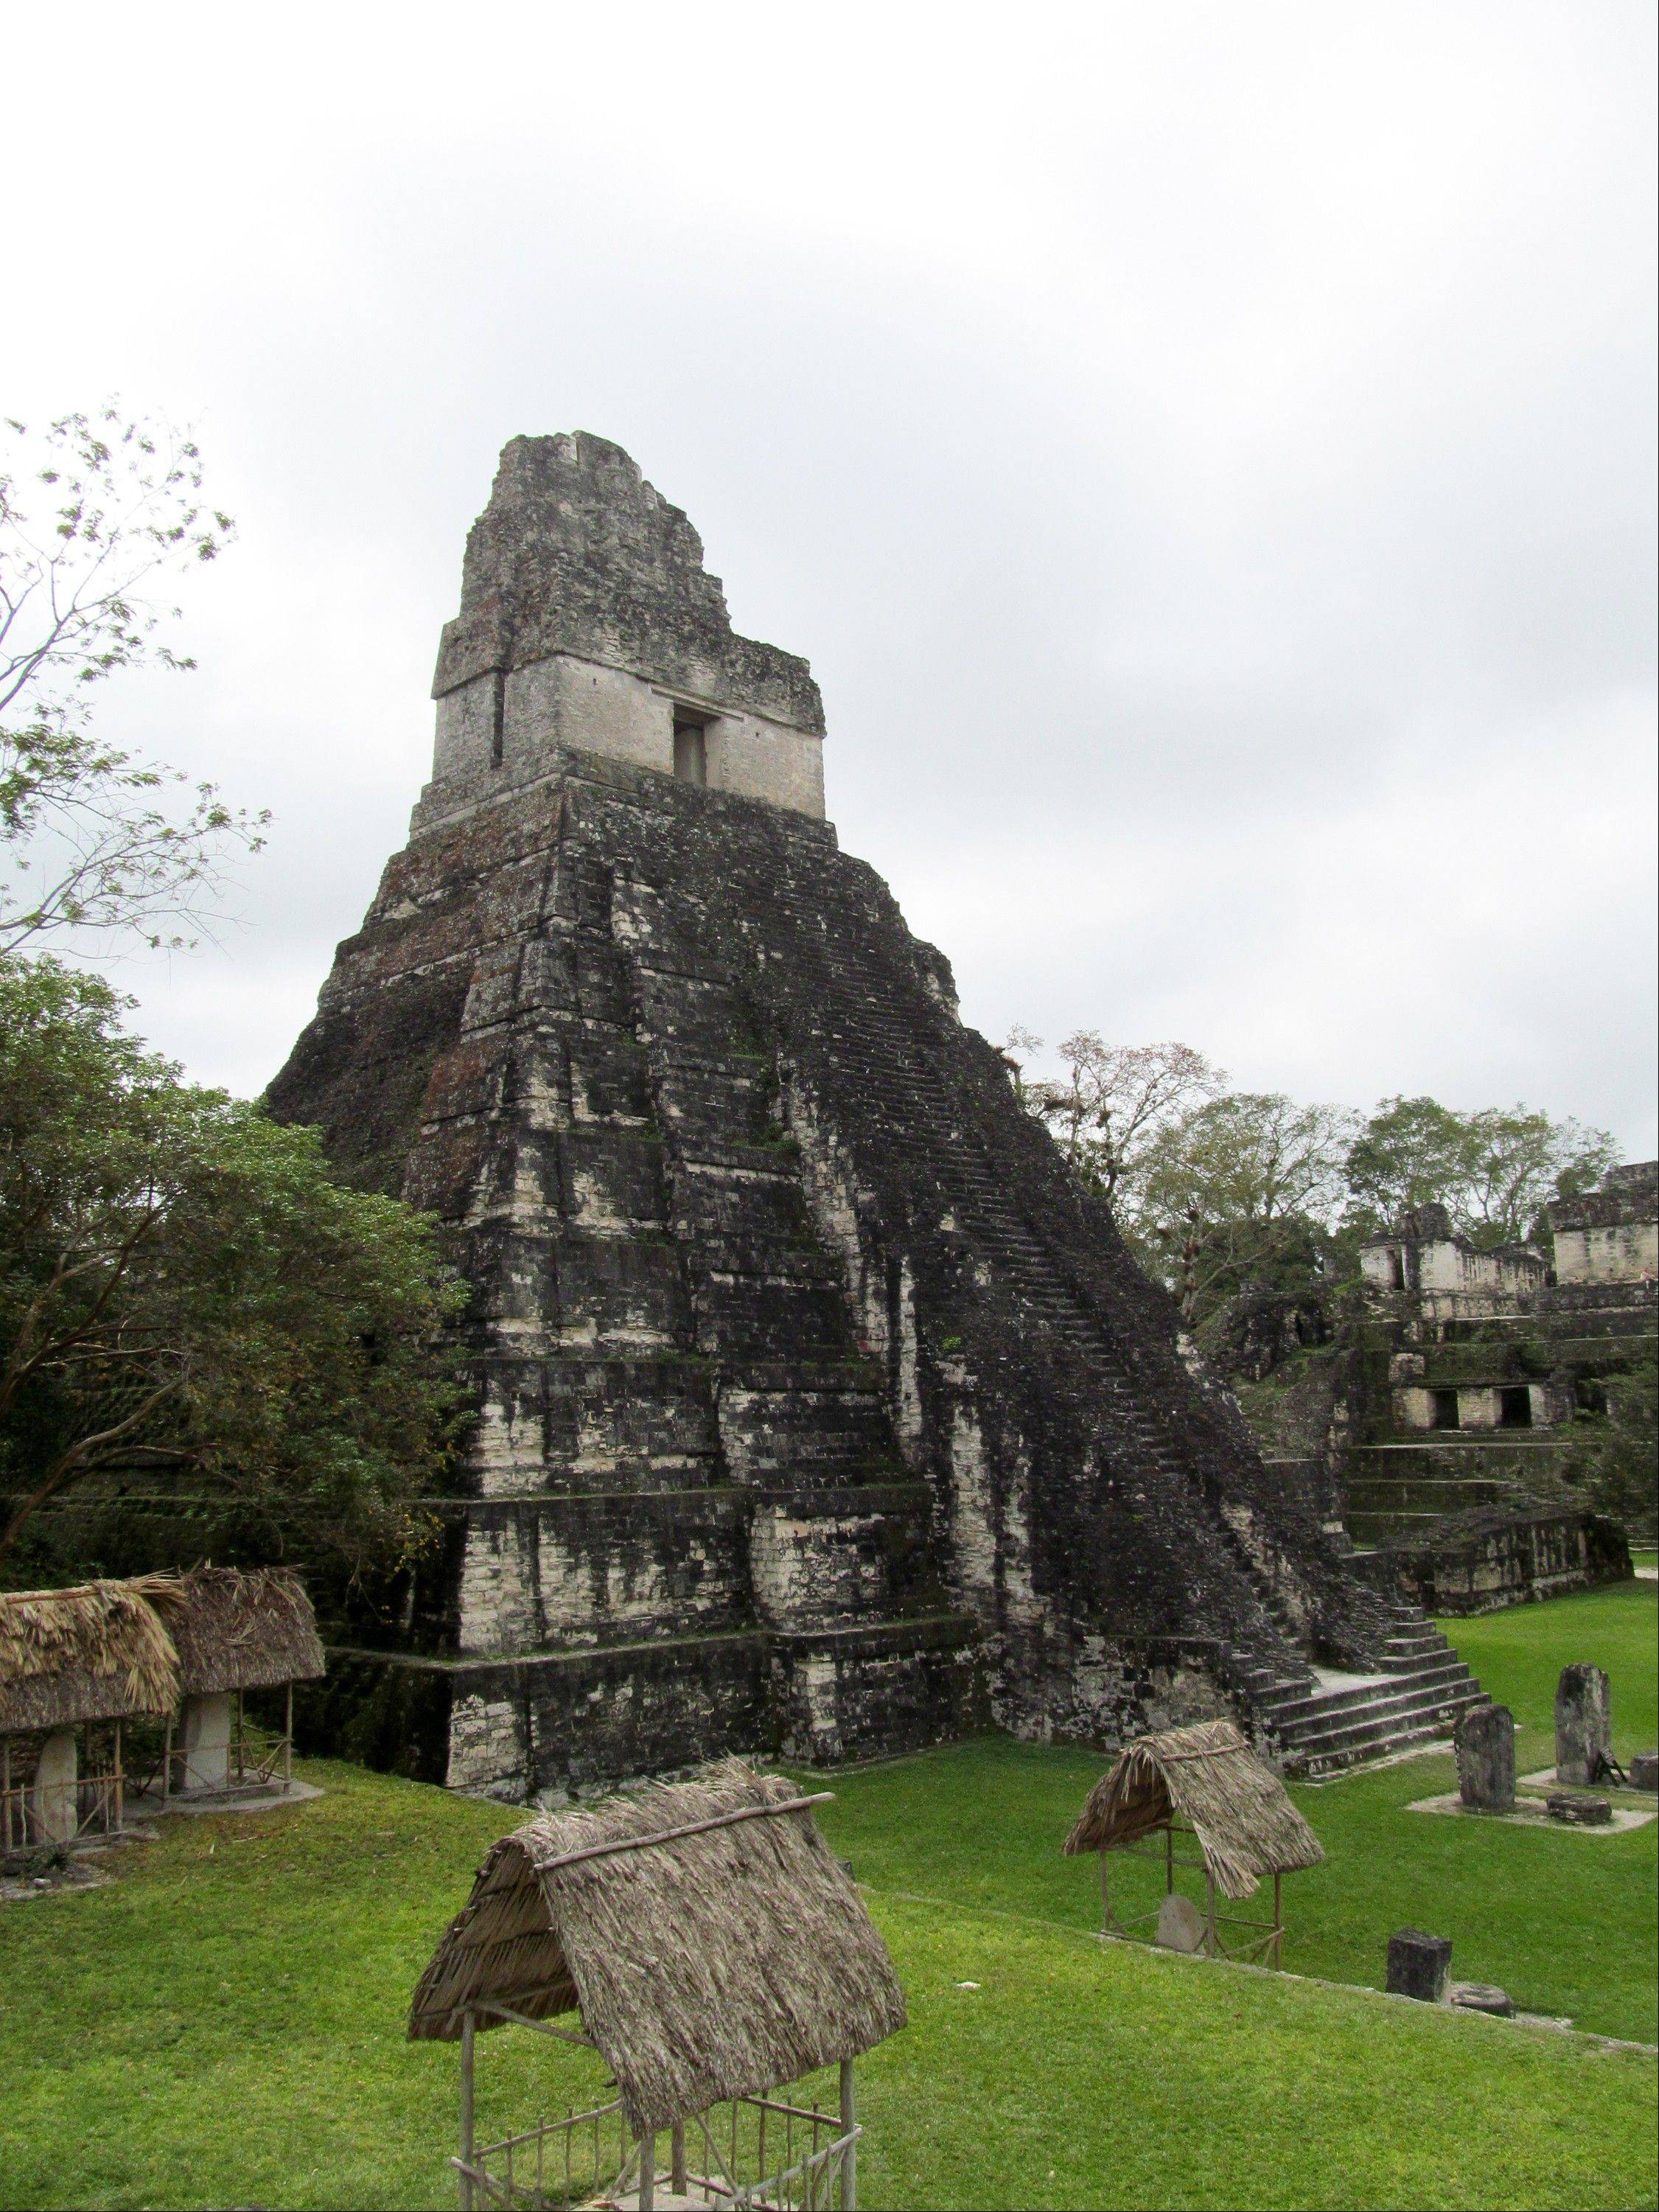 Temple I at Tikal, Guatemala's largest Mayan ruins park and a UNESCO World Heritage Site. Spread over 220 square miles, Tikal encompasses thousands of structures in addition to a primary tropical forest and a variety of wildlife.